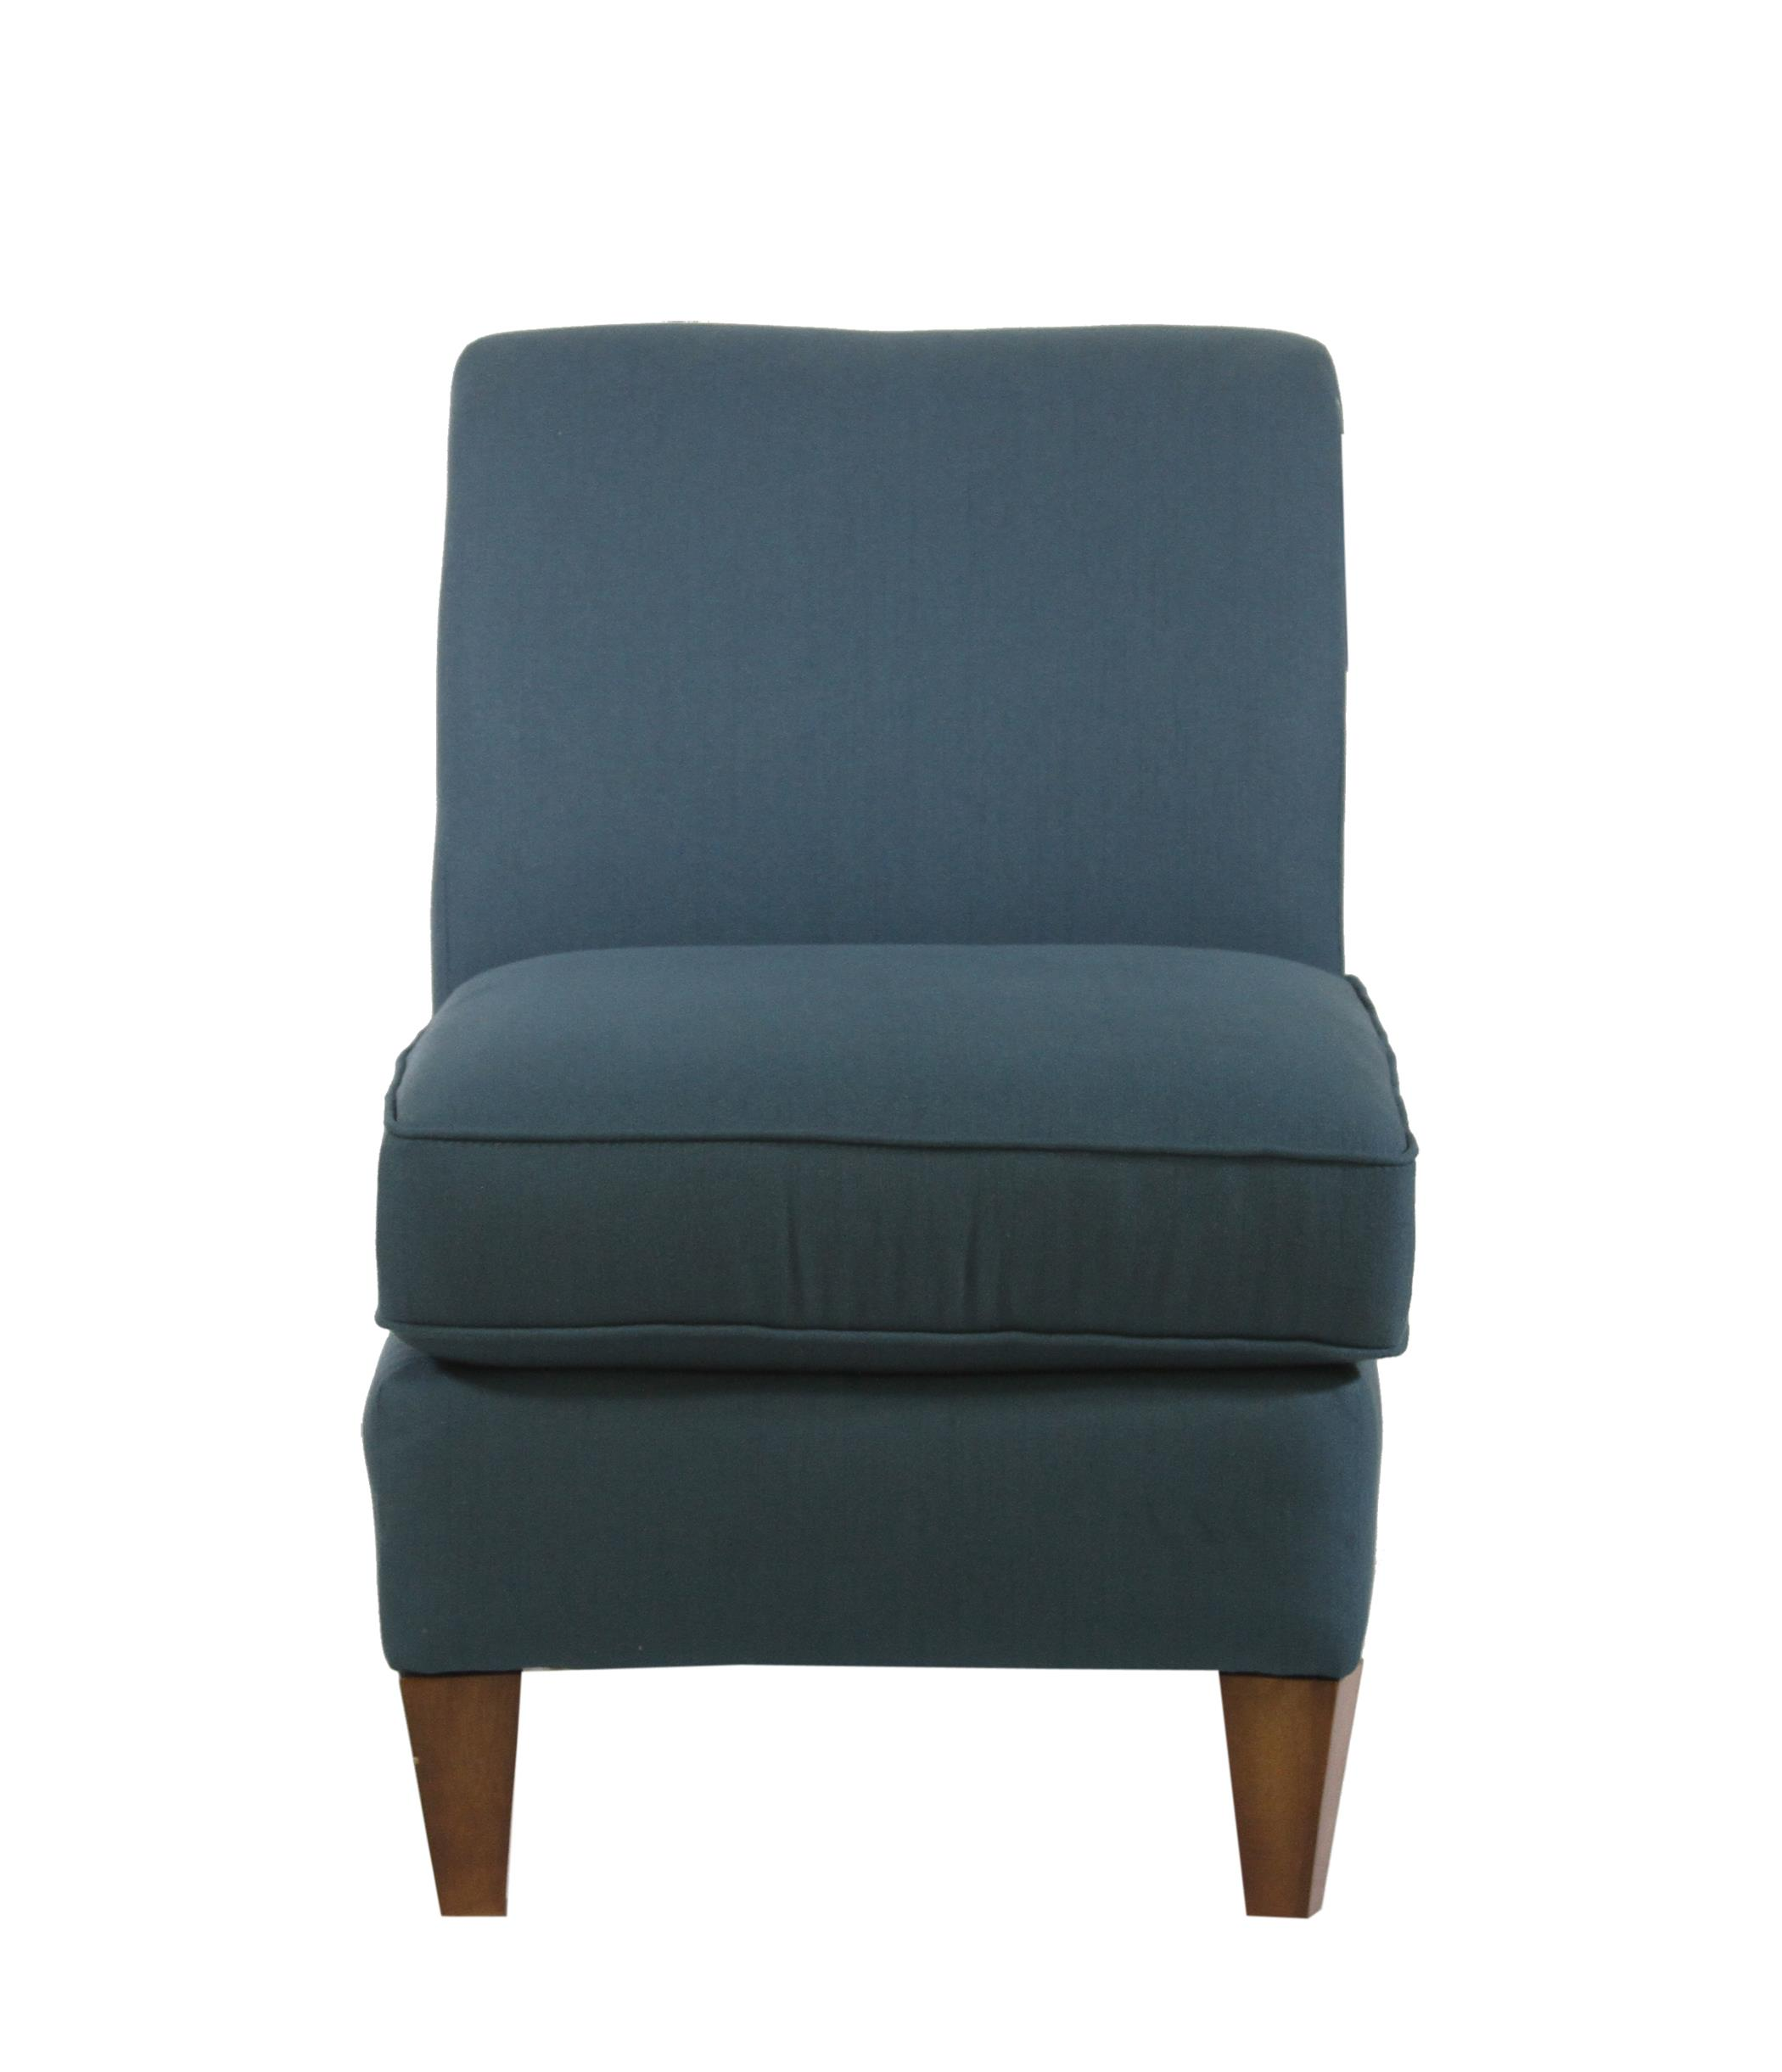 Flexsteel Digby Armless Chair - Item Number: 5966 19 Digby